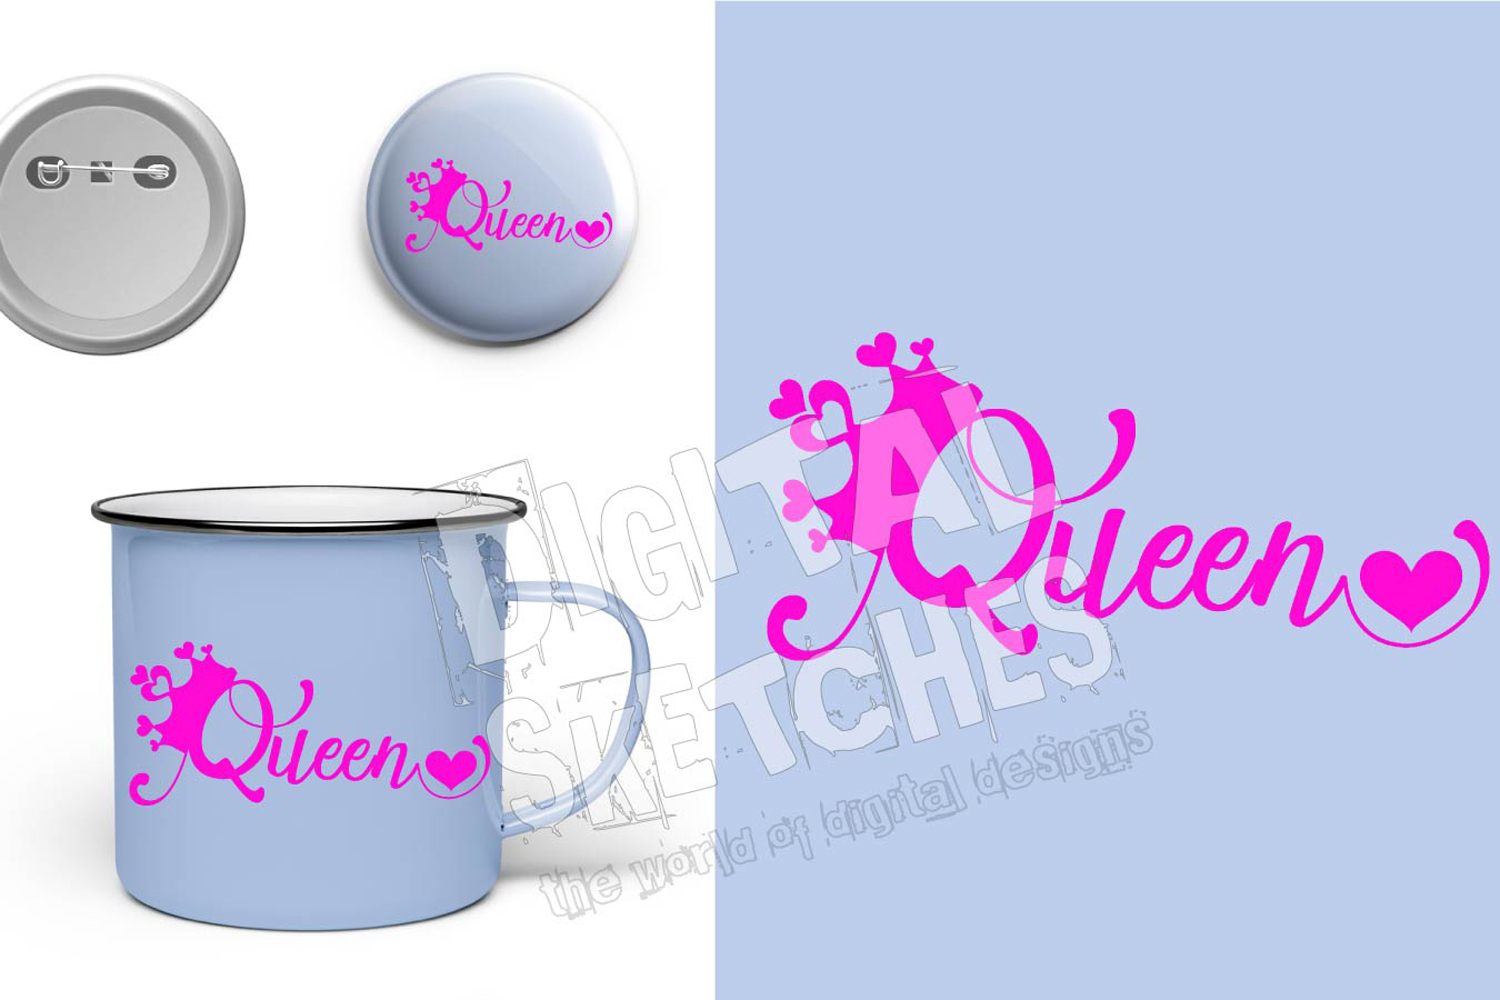 Princess Crown Queen Saying Heart Cut File Vector Graphics example image 3